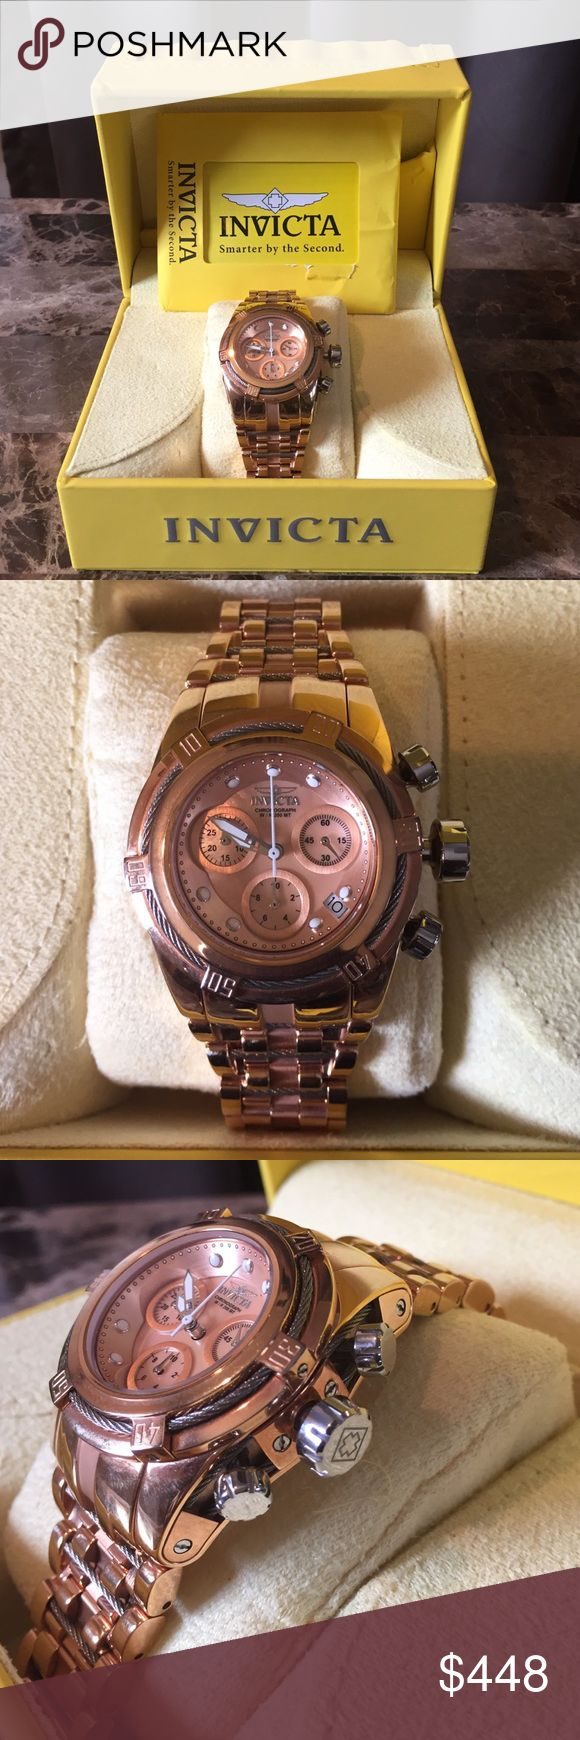 "Invicta Women's Bolt Zeus Stainless Steel Watch Invicta rose-tone timepiece with MOP dial.  40 mm case features stainless steel cable accents.  Water Resistant to 660 Feet.  Rarely worn.  Rarely worn.  No signs of wear.  Currently sized for a 7"" wrist.  Extra links in box. Invicta Accessories Watches"